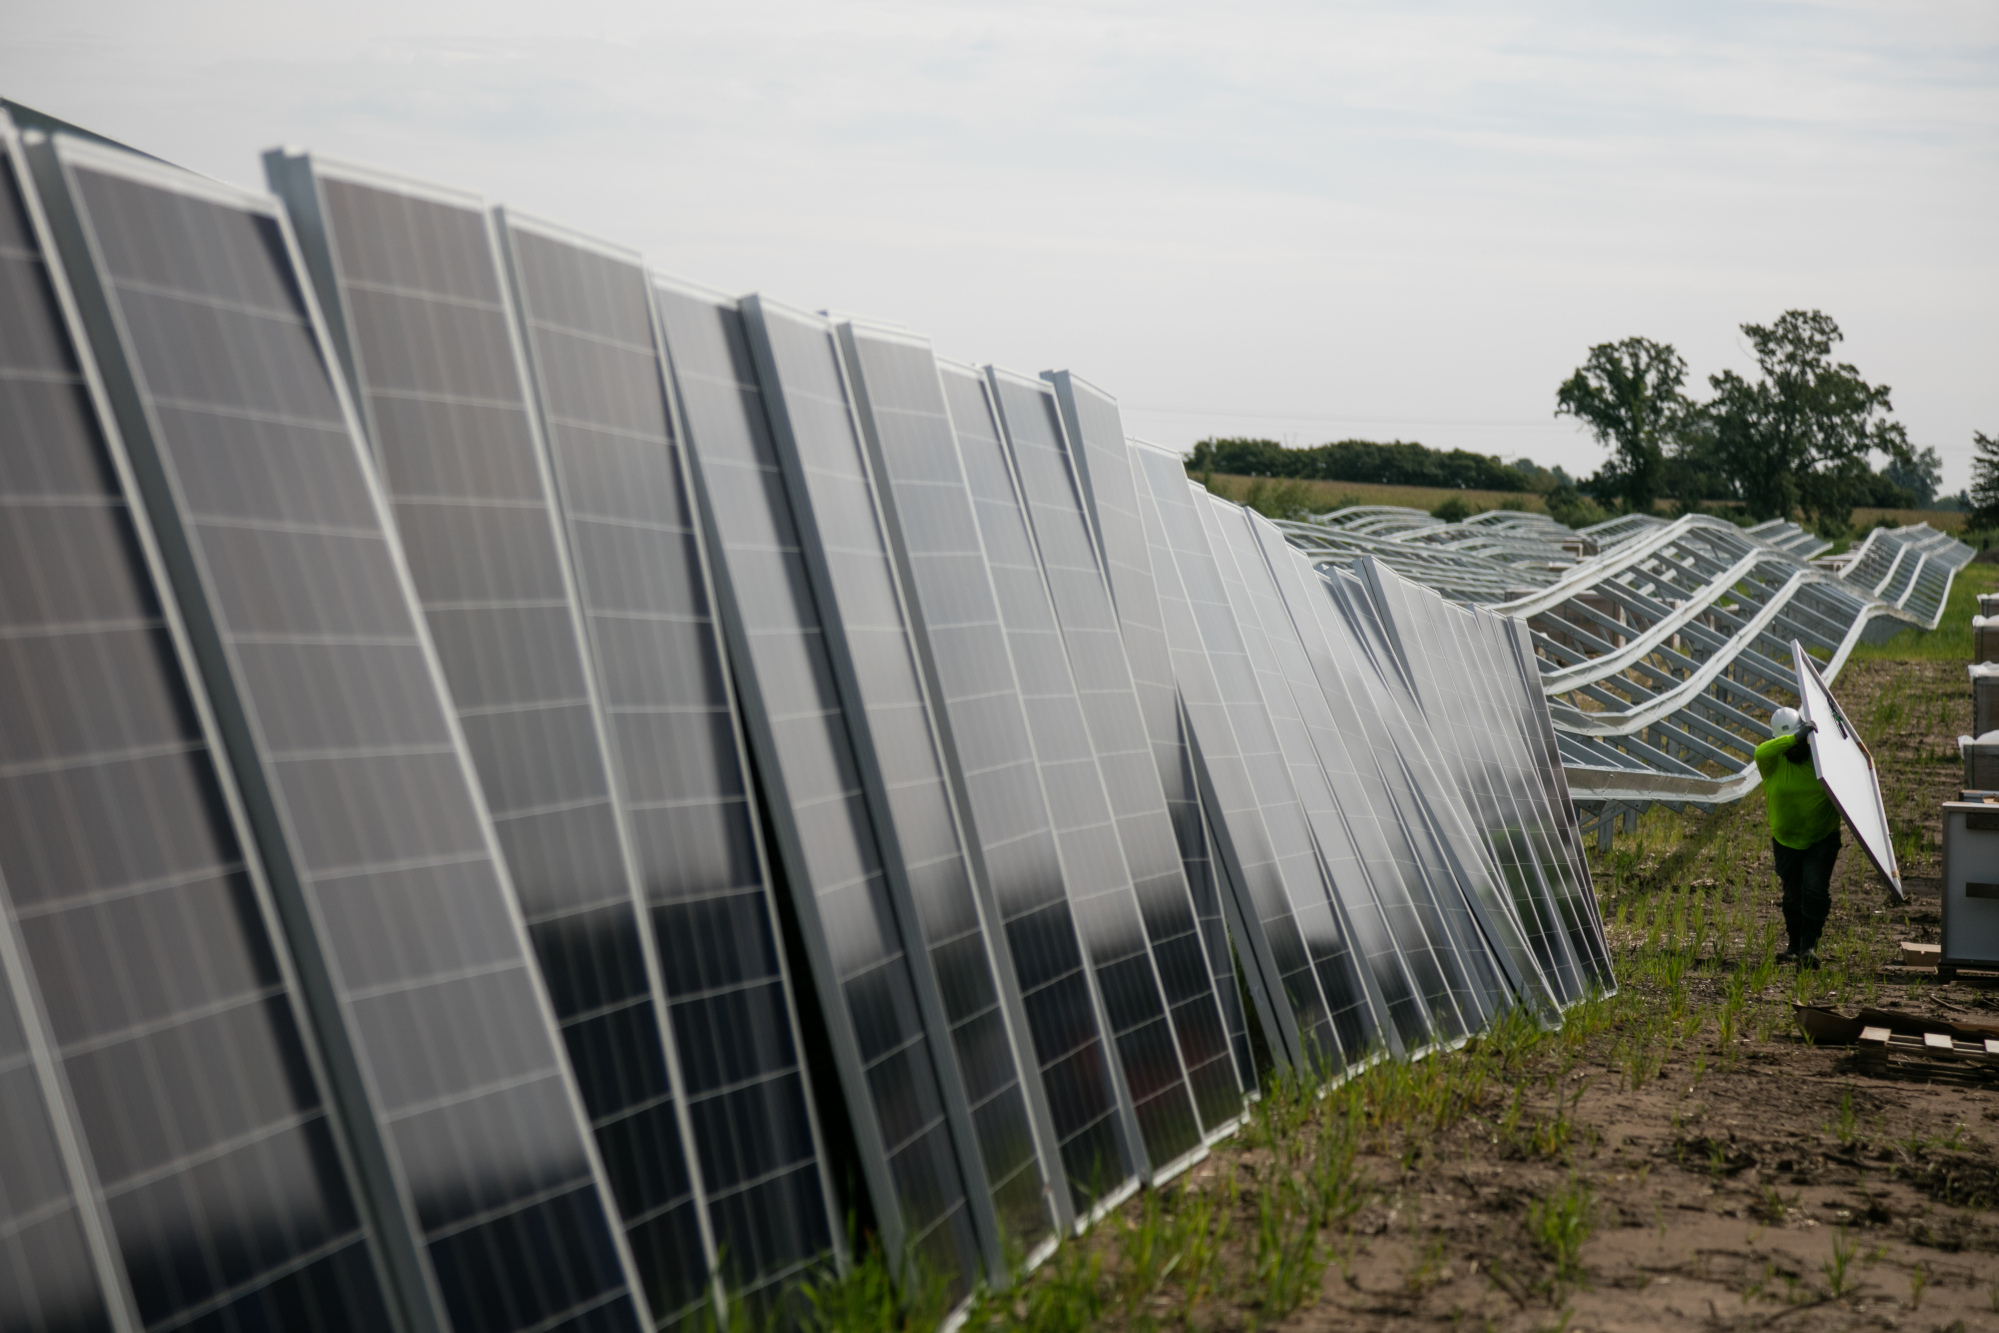 U.S. Solar Workforce Could Be Halved By Virus, Group Says